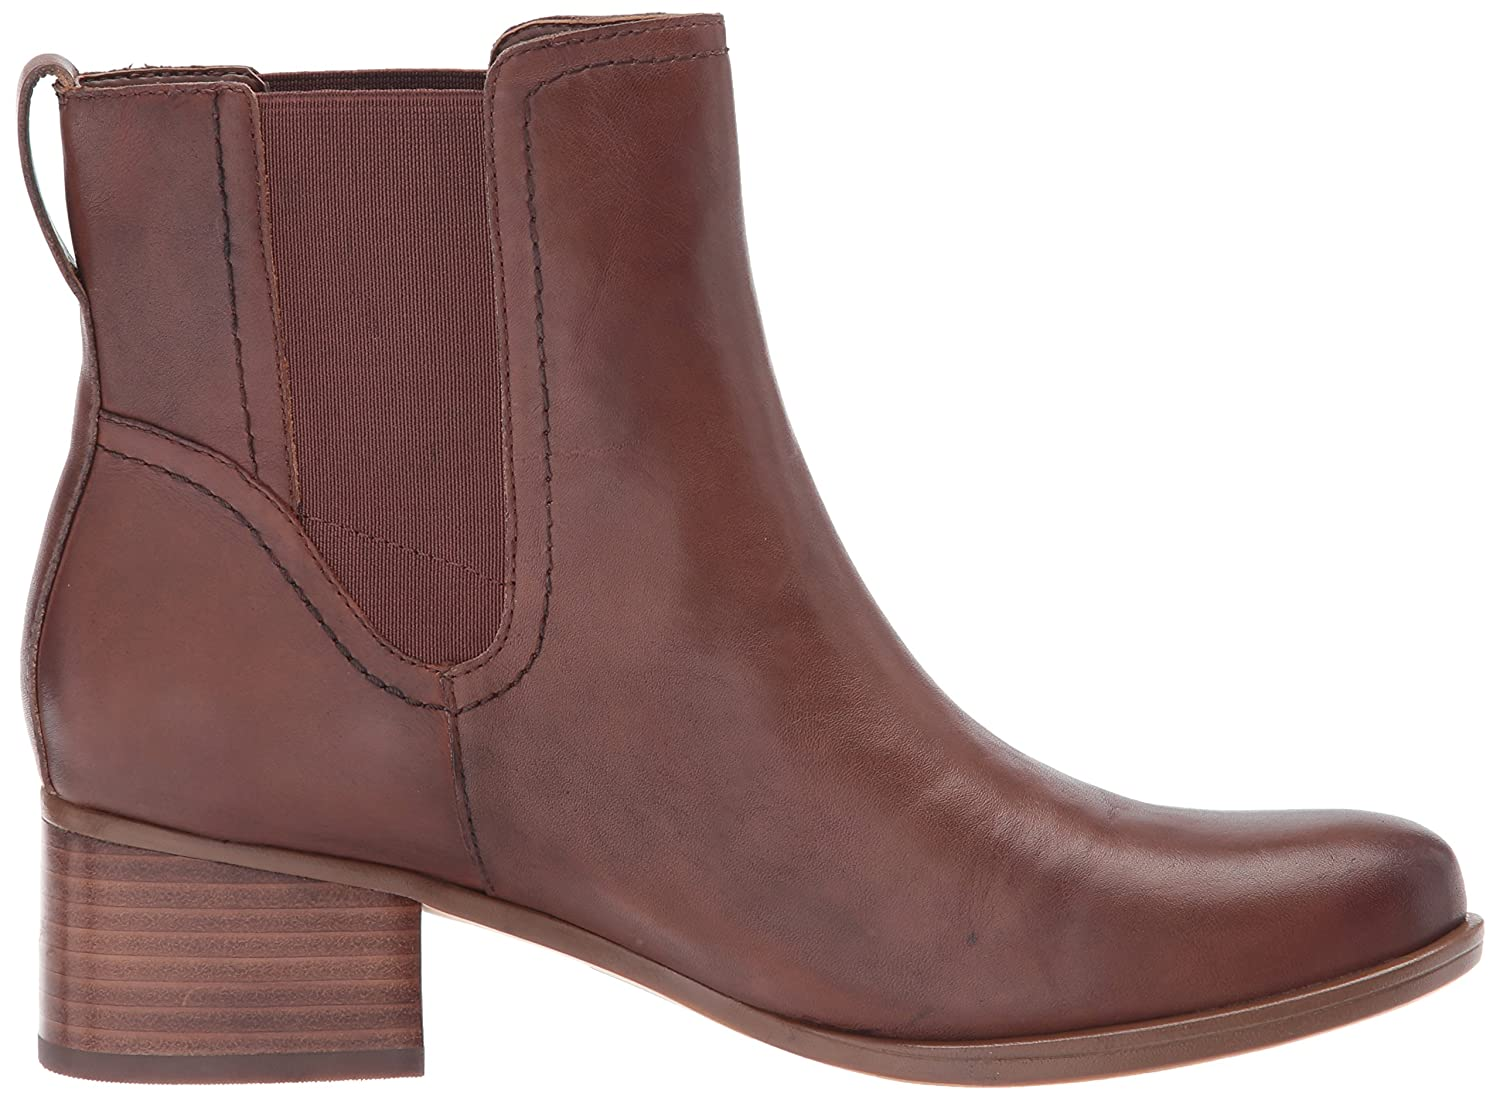 Naturalizer B01N1WUHRC Women's Dallas Ankle Bootie B01N1WUHRC Naturalizer 10 W US|Coffee Bean 71451c